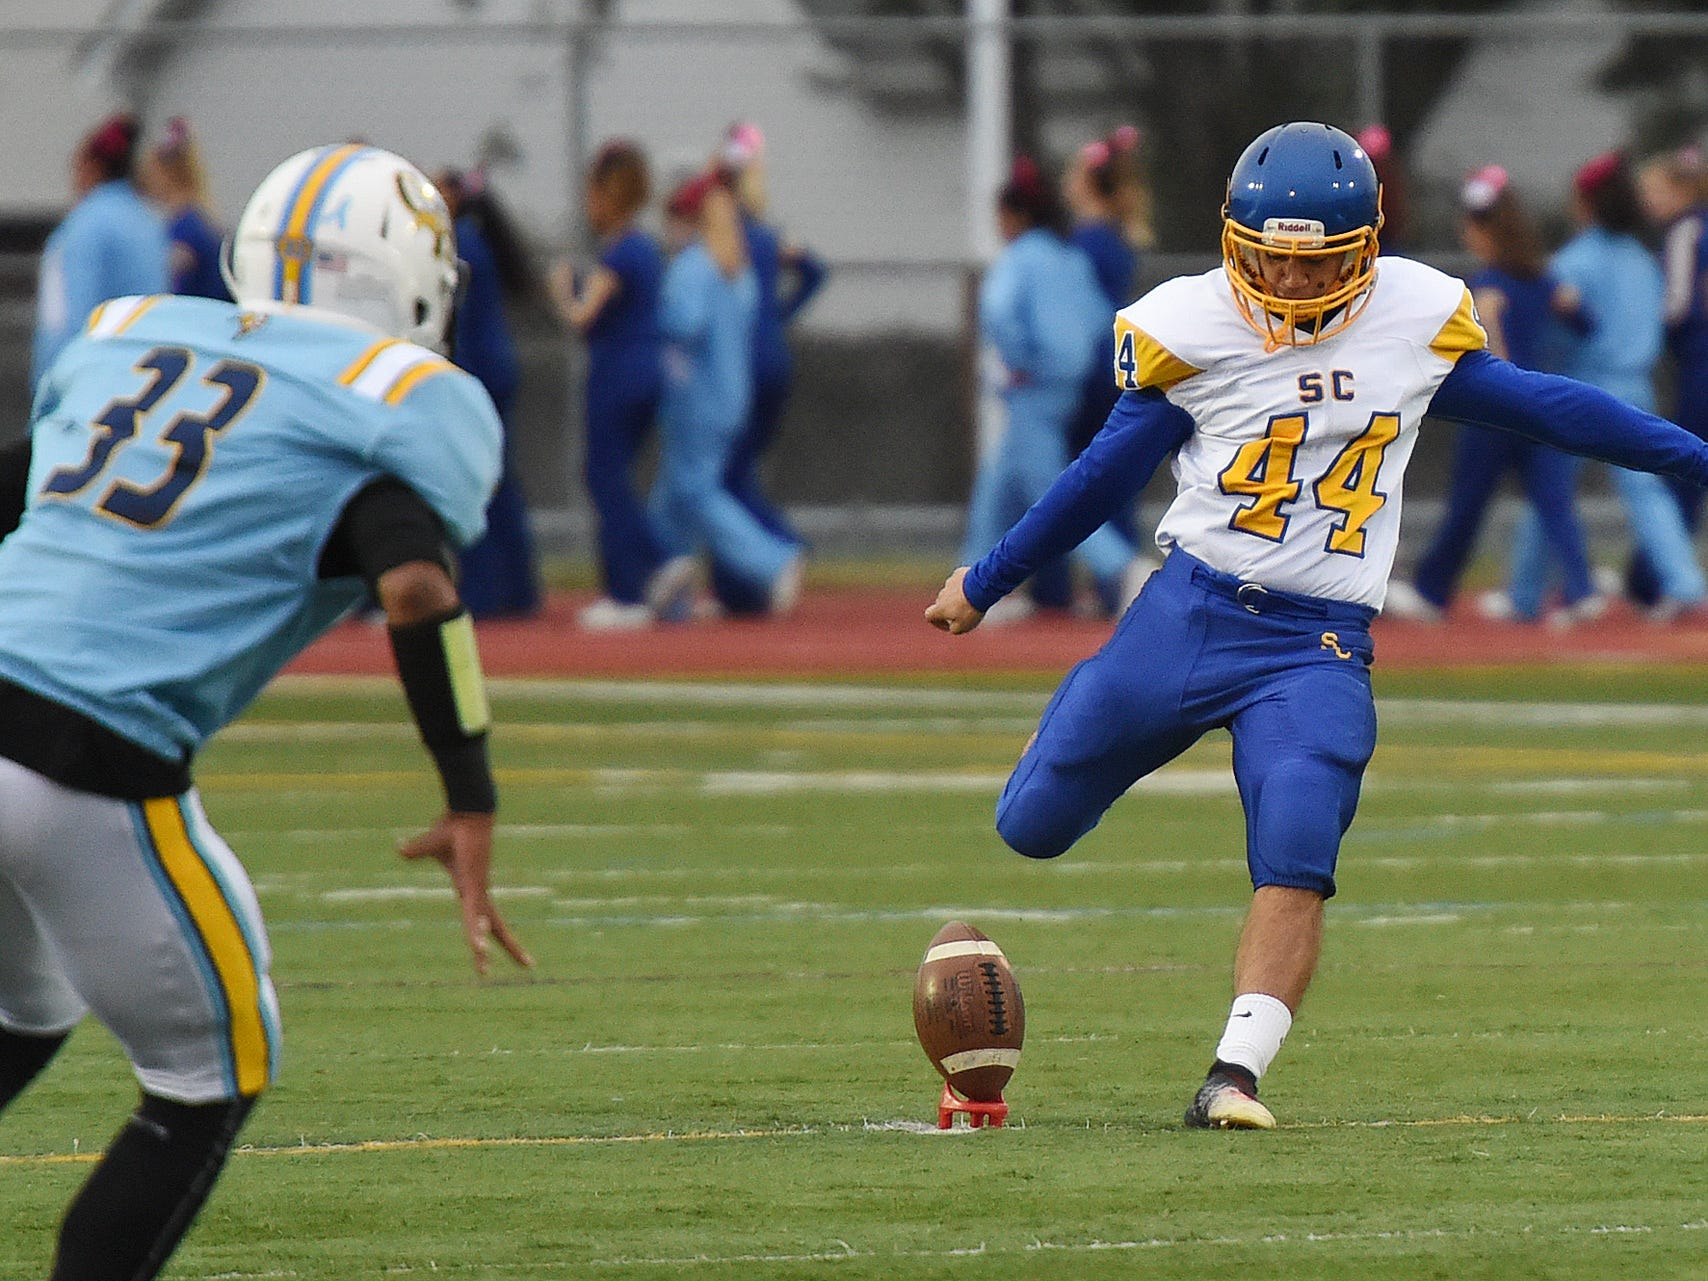 Sussex Central's Samern Sam kicks the ball during the game against  Cape Henlopen in Lewes on Oct. 26, 2018.